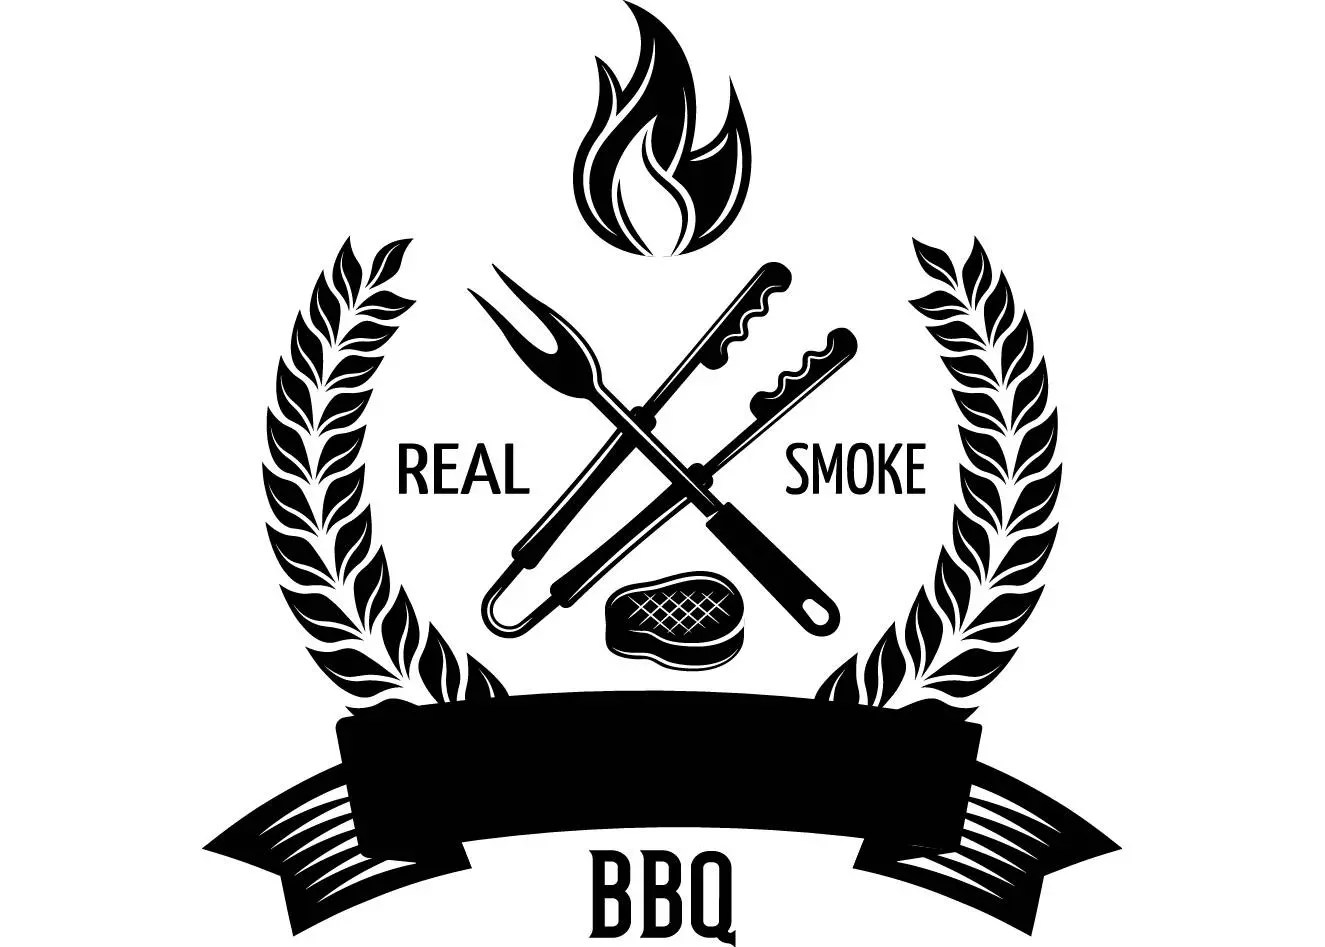 Bbq Logo 17 Grill Grilling Tongs Meat Steak Barbecue